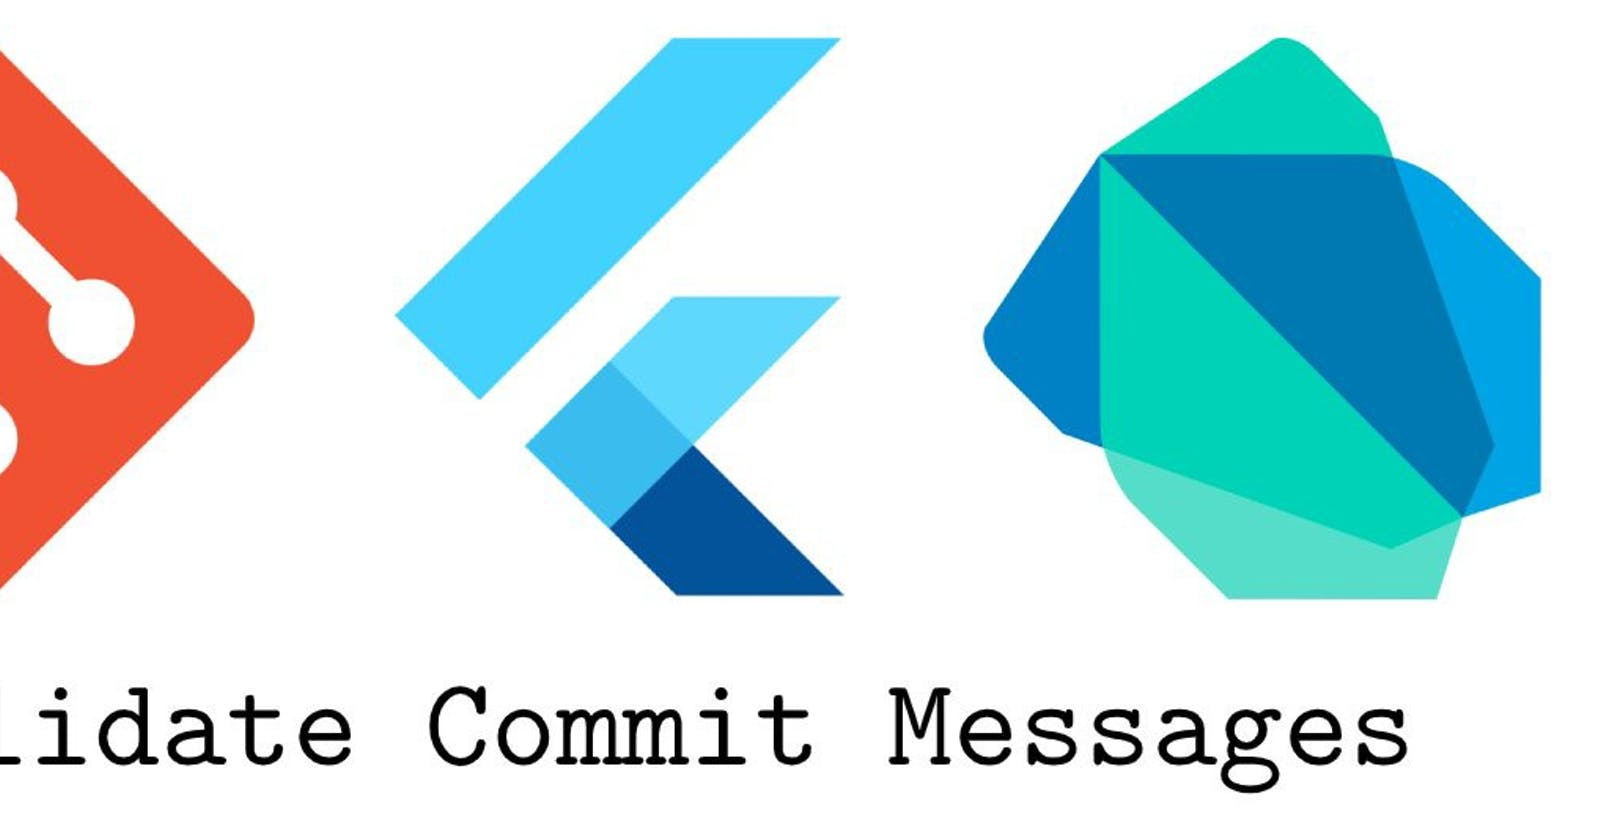 Validating commit messages with dart and Lefthook